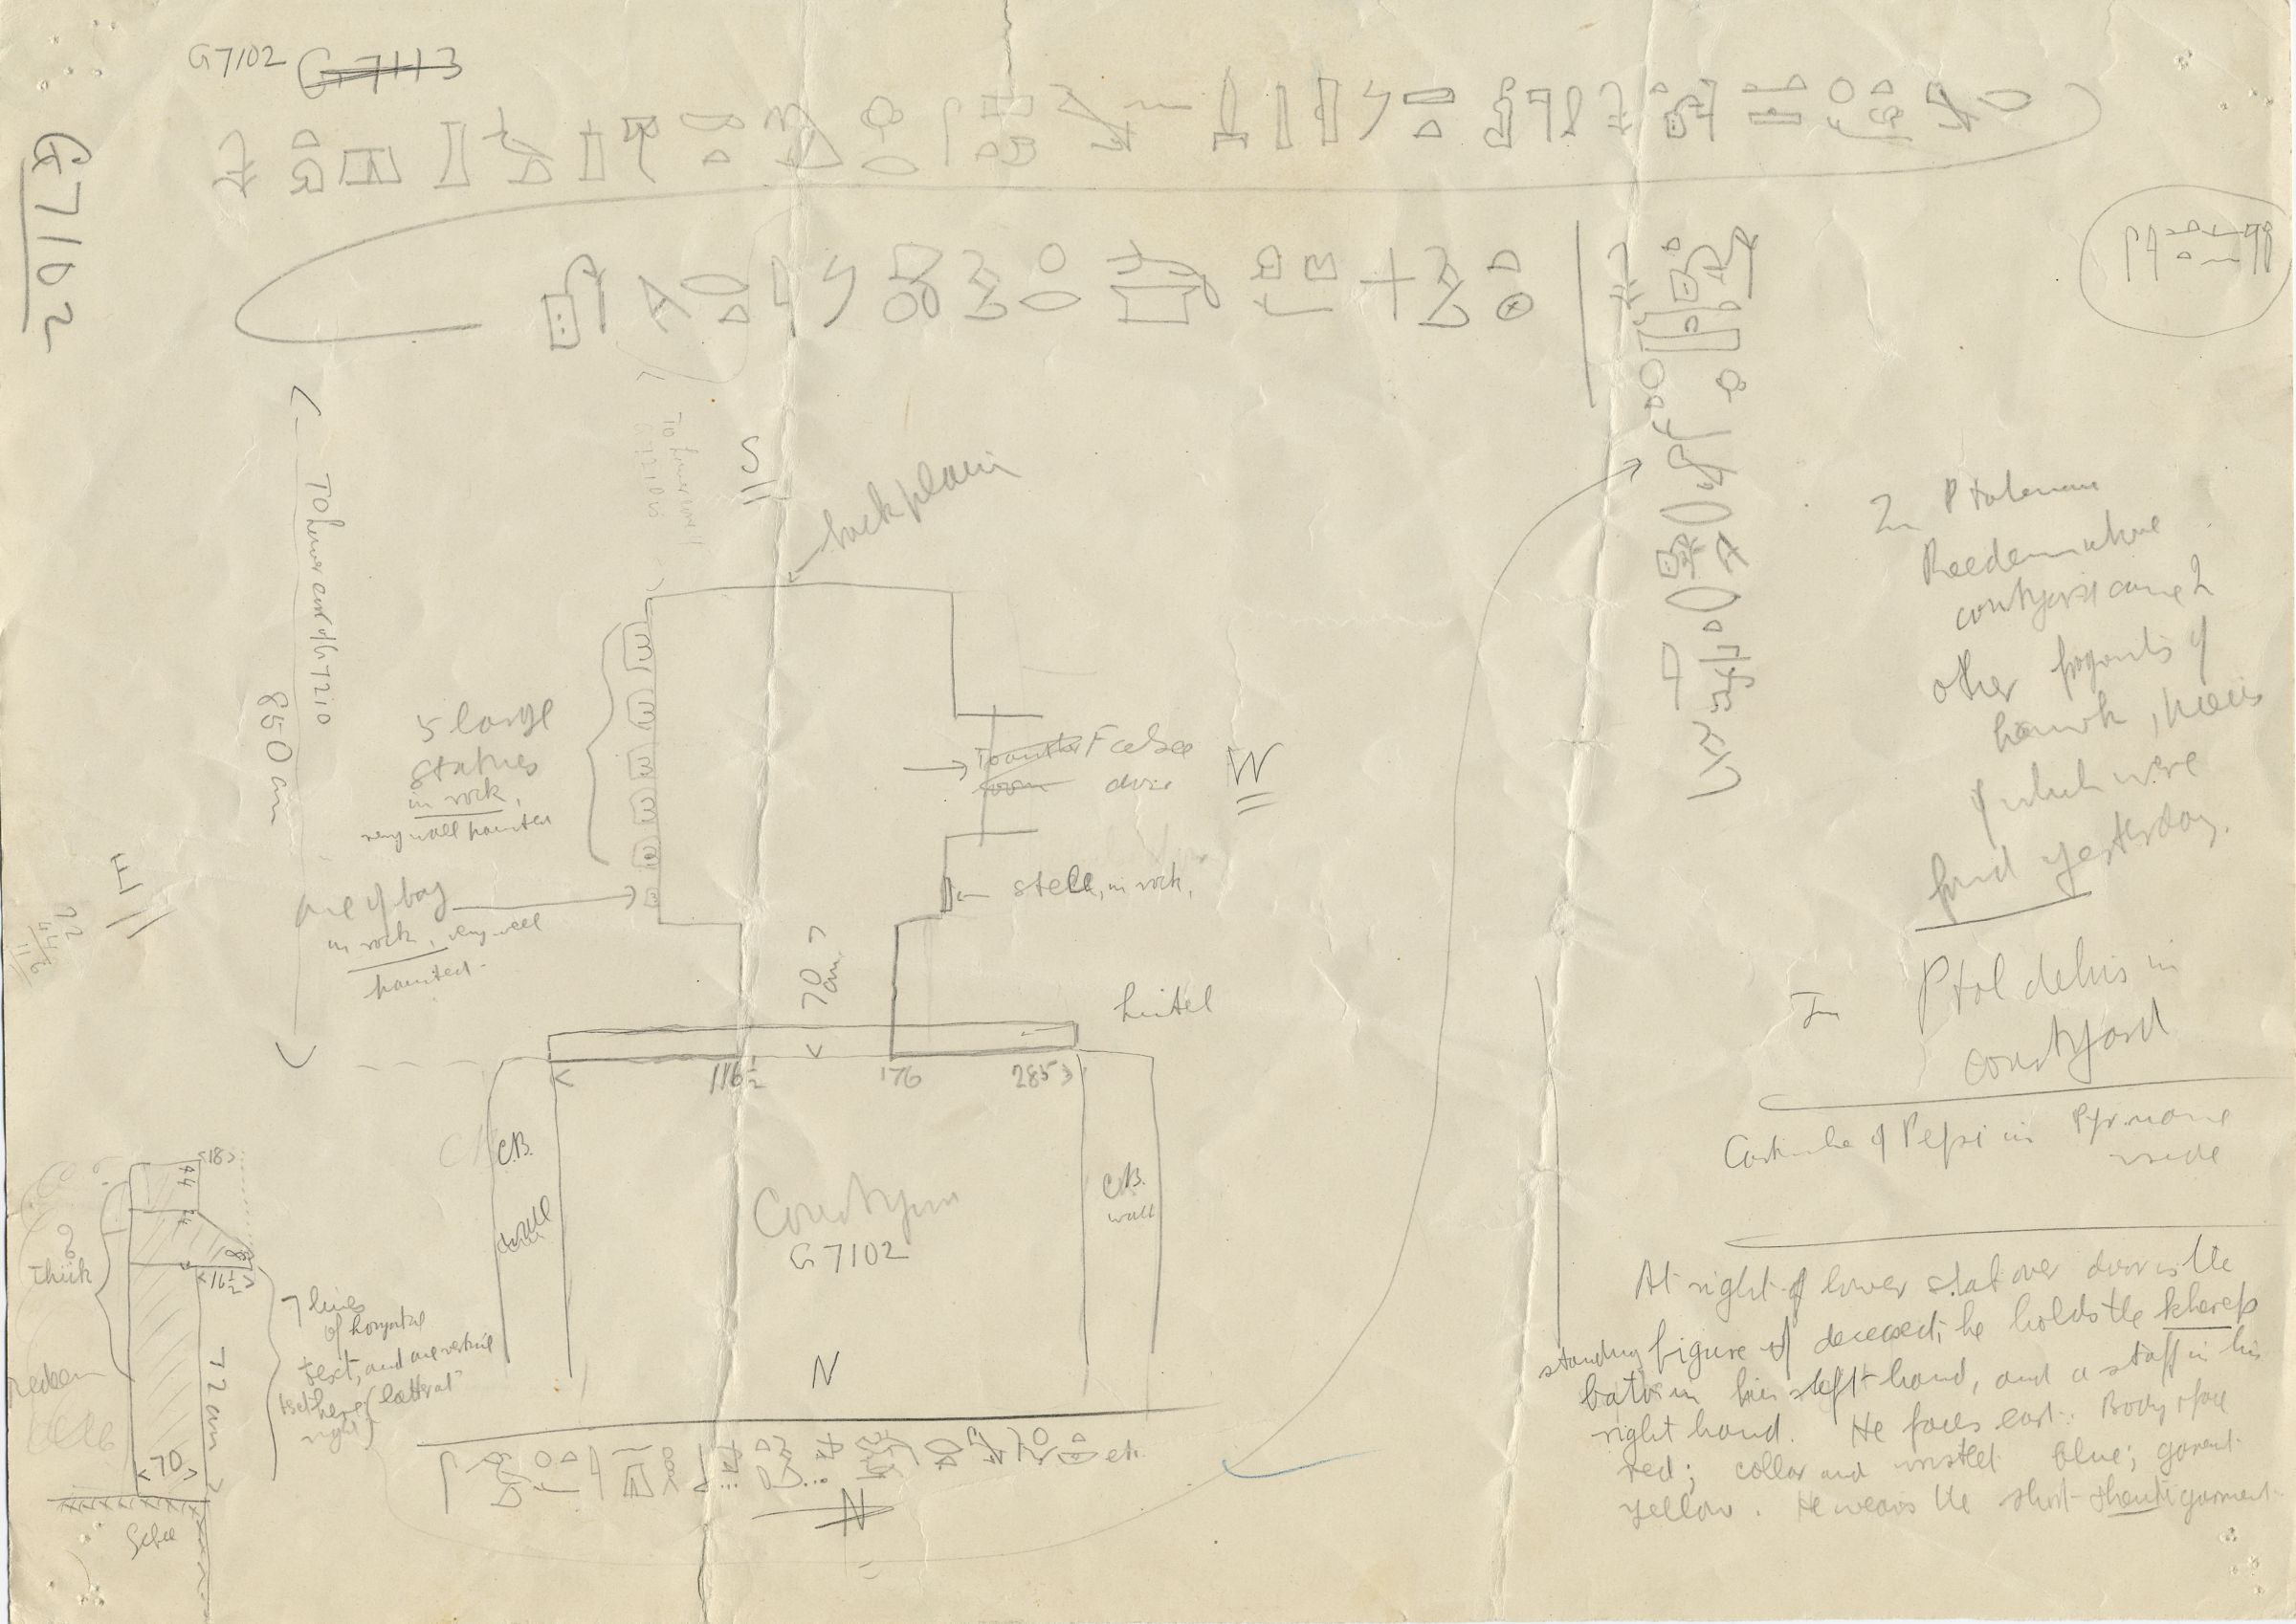 Maps and plans: G 7102, Inscription and Plan